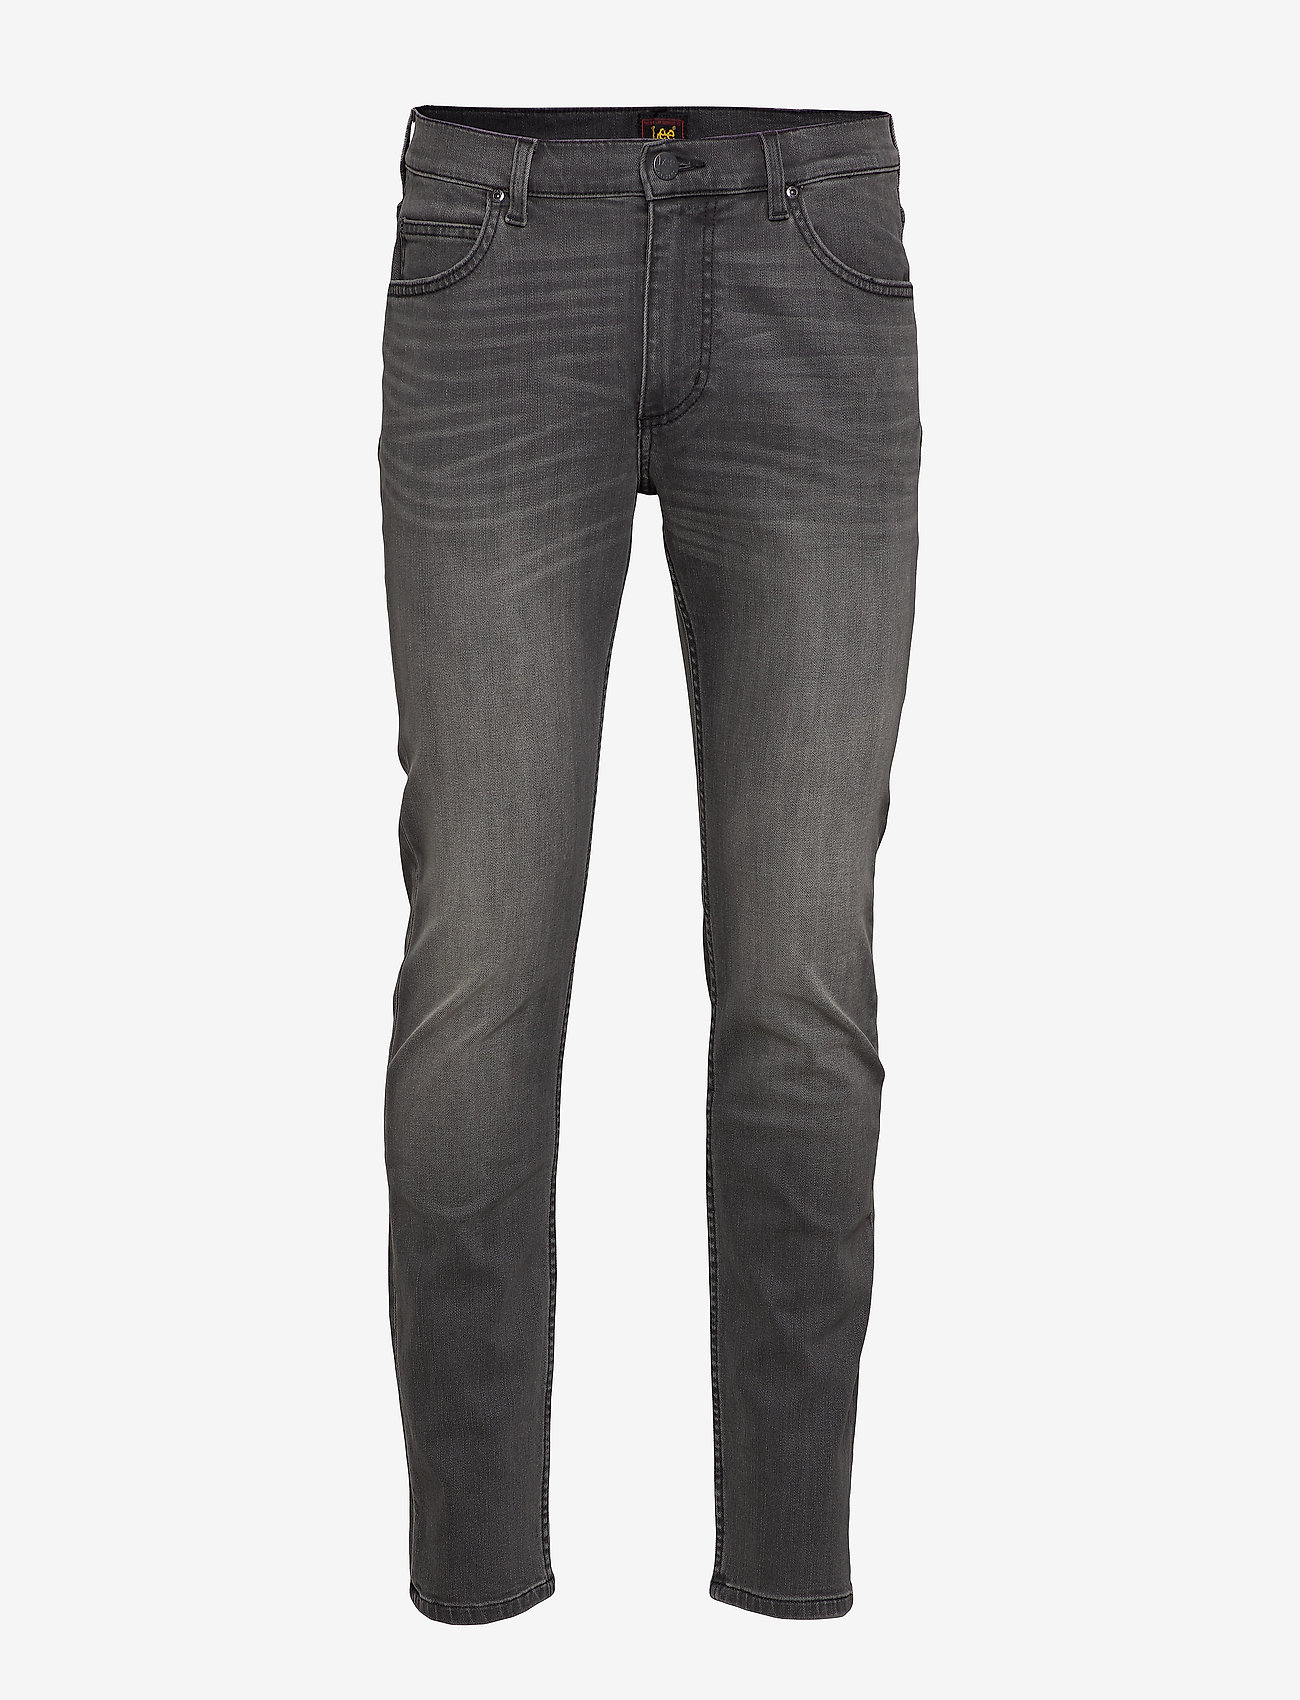 Lee Jeans - RIDER - regular jeans - moto worn in - 0